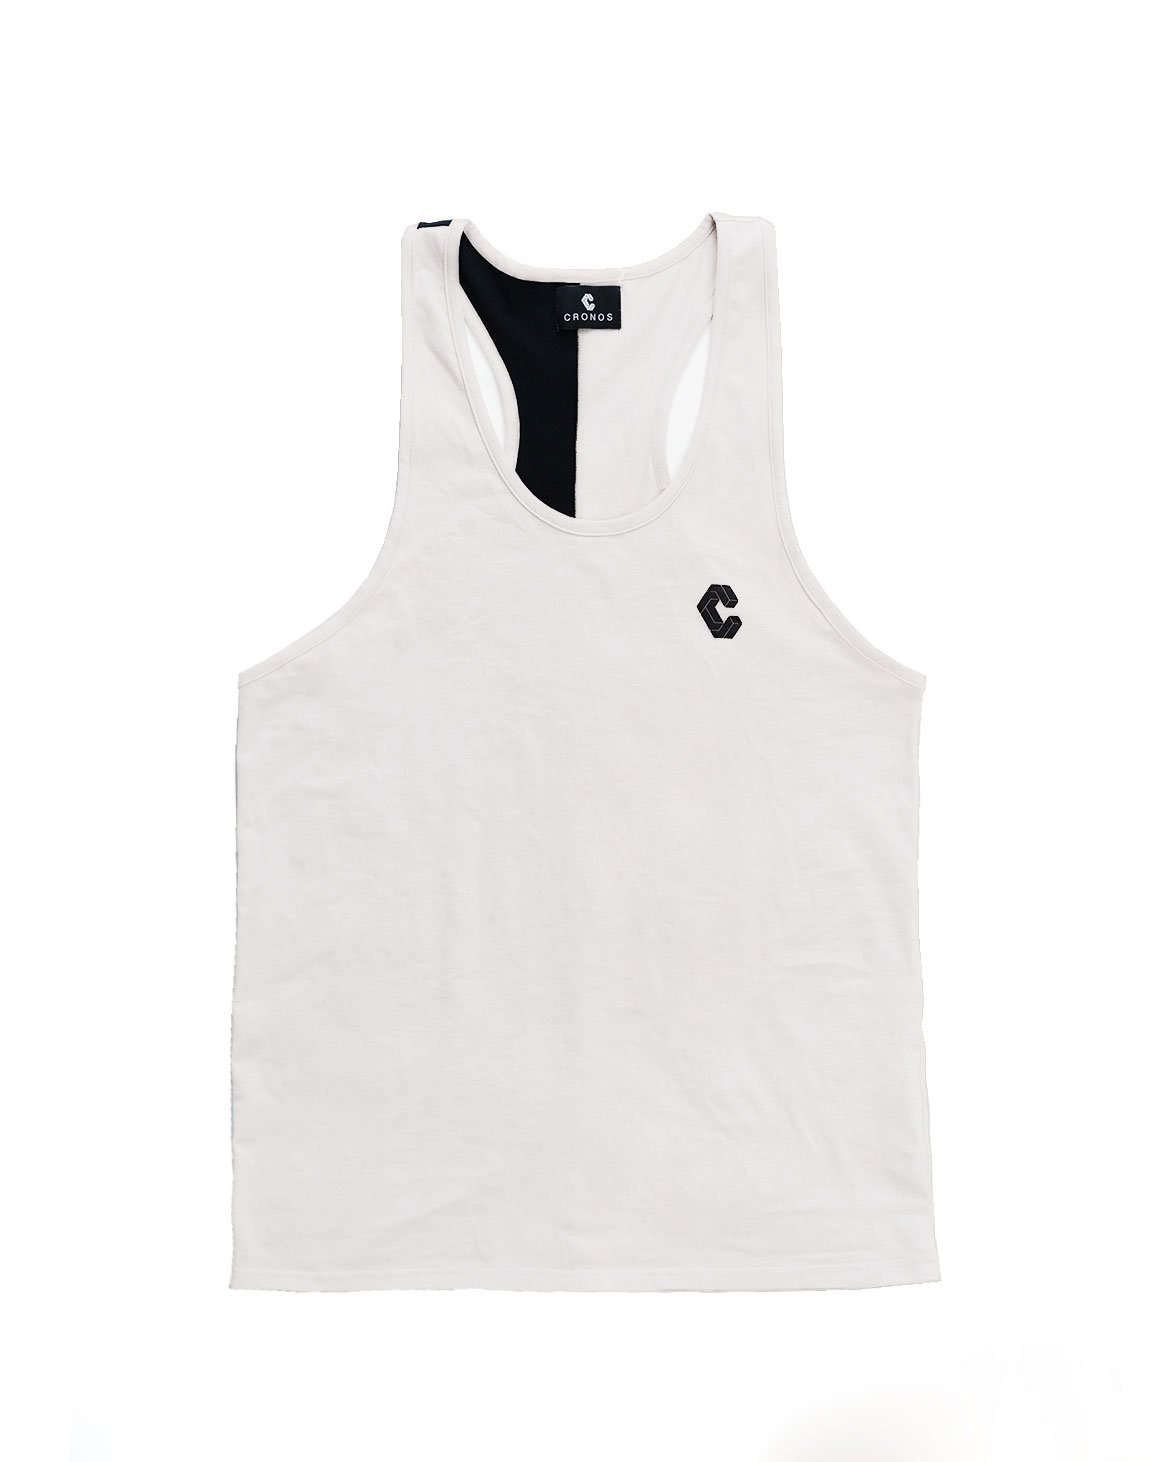 <img class='new_mark_img1' src='https://img.shop-pro.jp/img/new/icons1.gif' style='border:none;display:inline;margin:0px;padding:0px;width:auto;' />CRONOS BACK TWOLINE TANKTOP WHITE